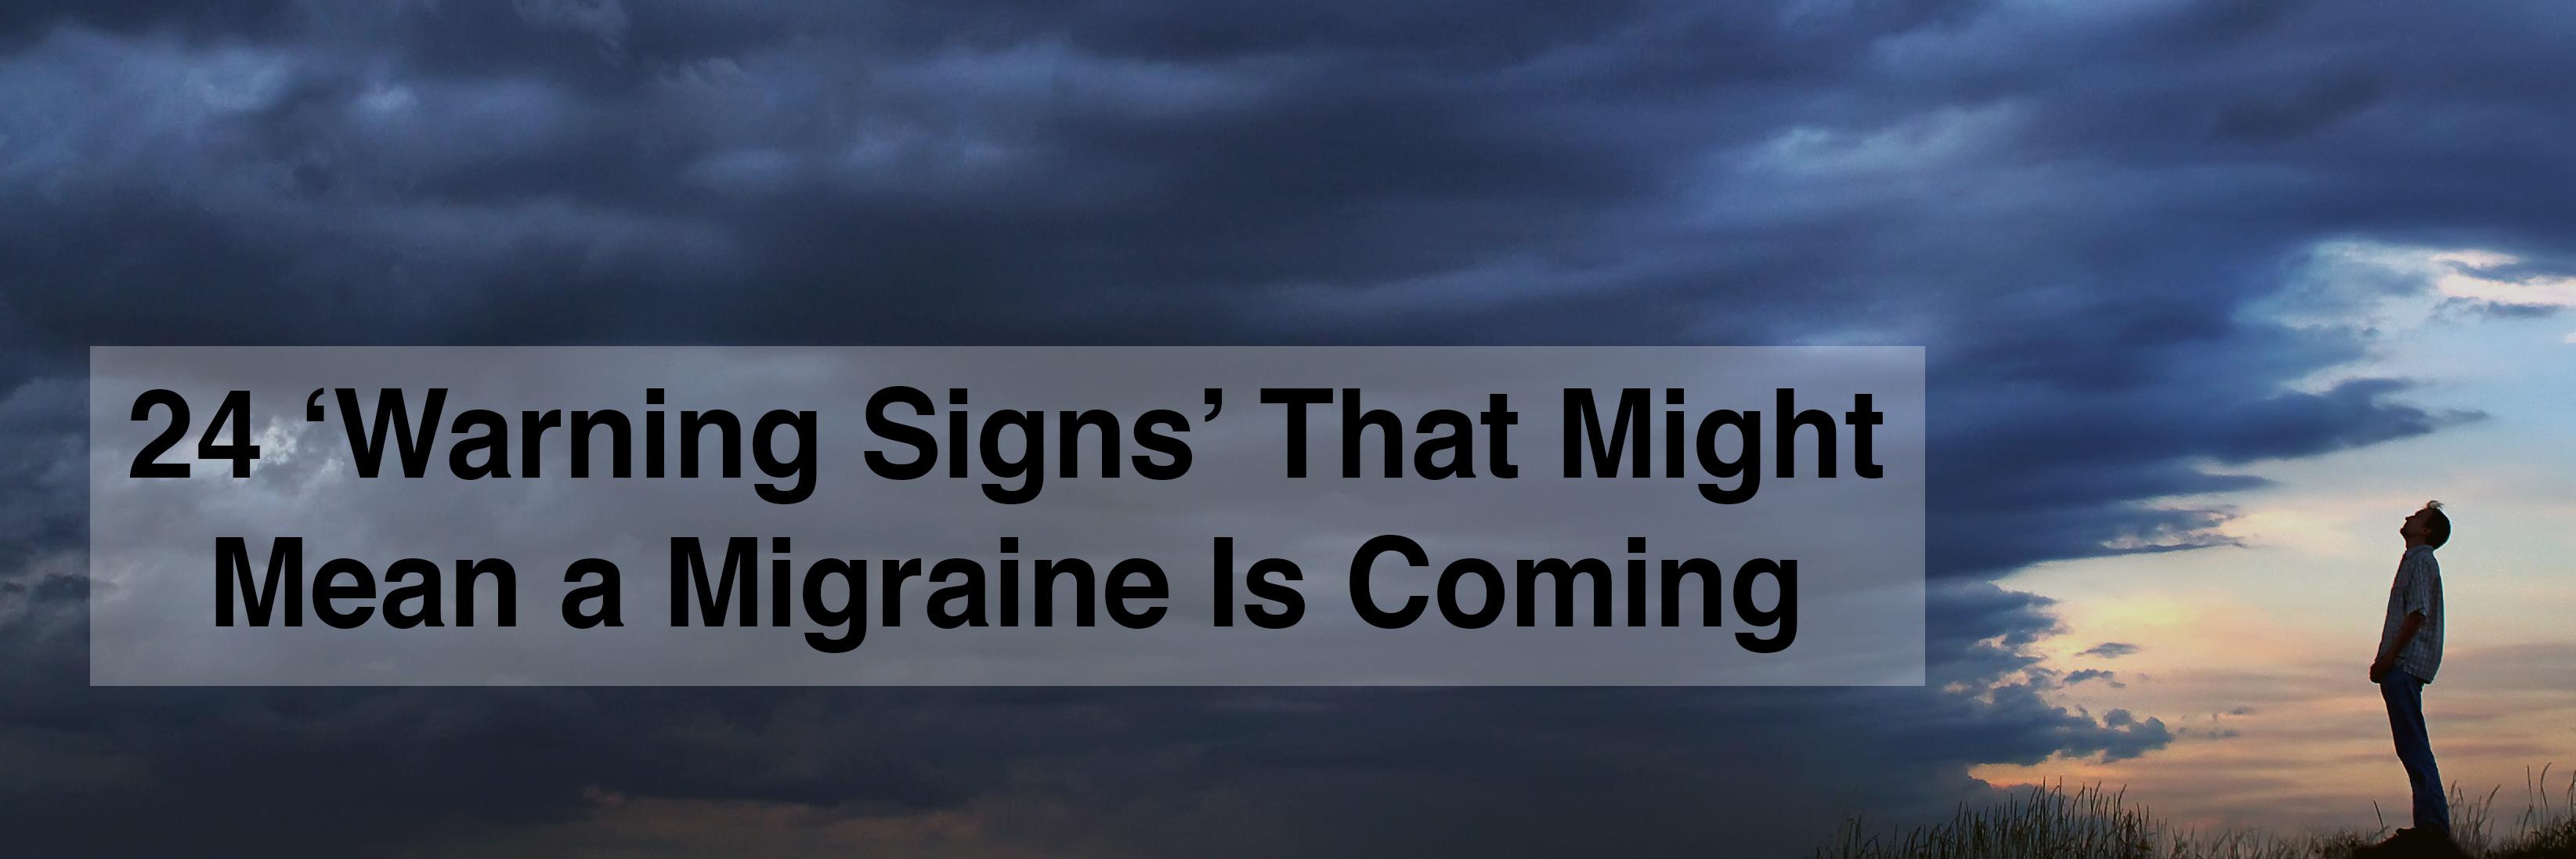 24 warning signs that might mean a migraine is coming